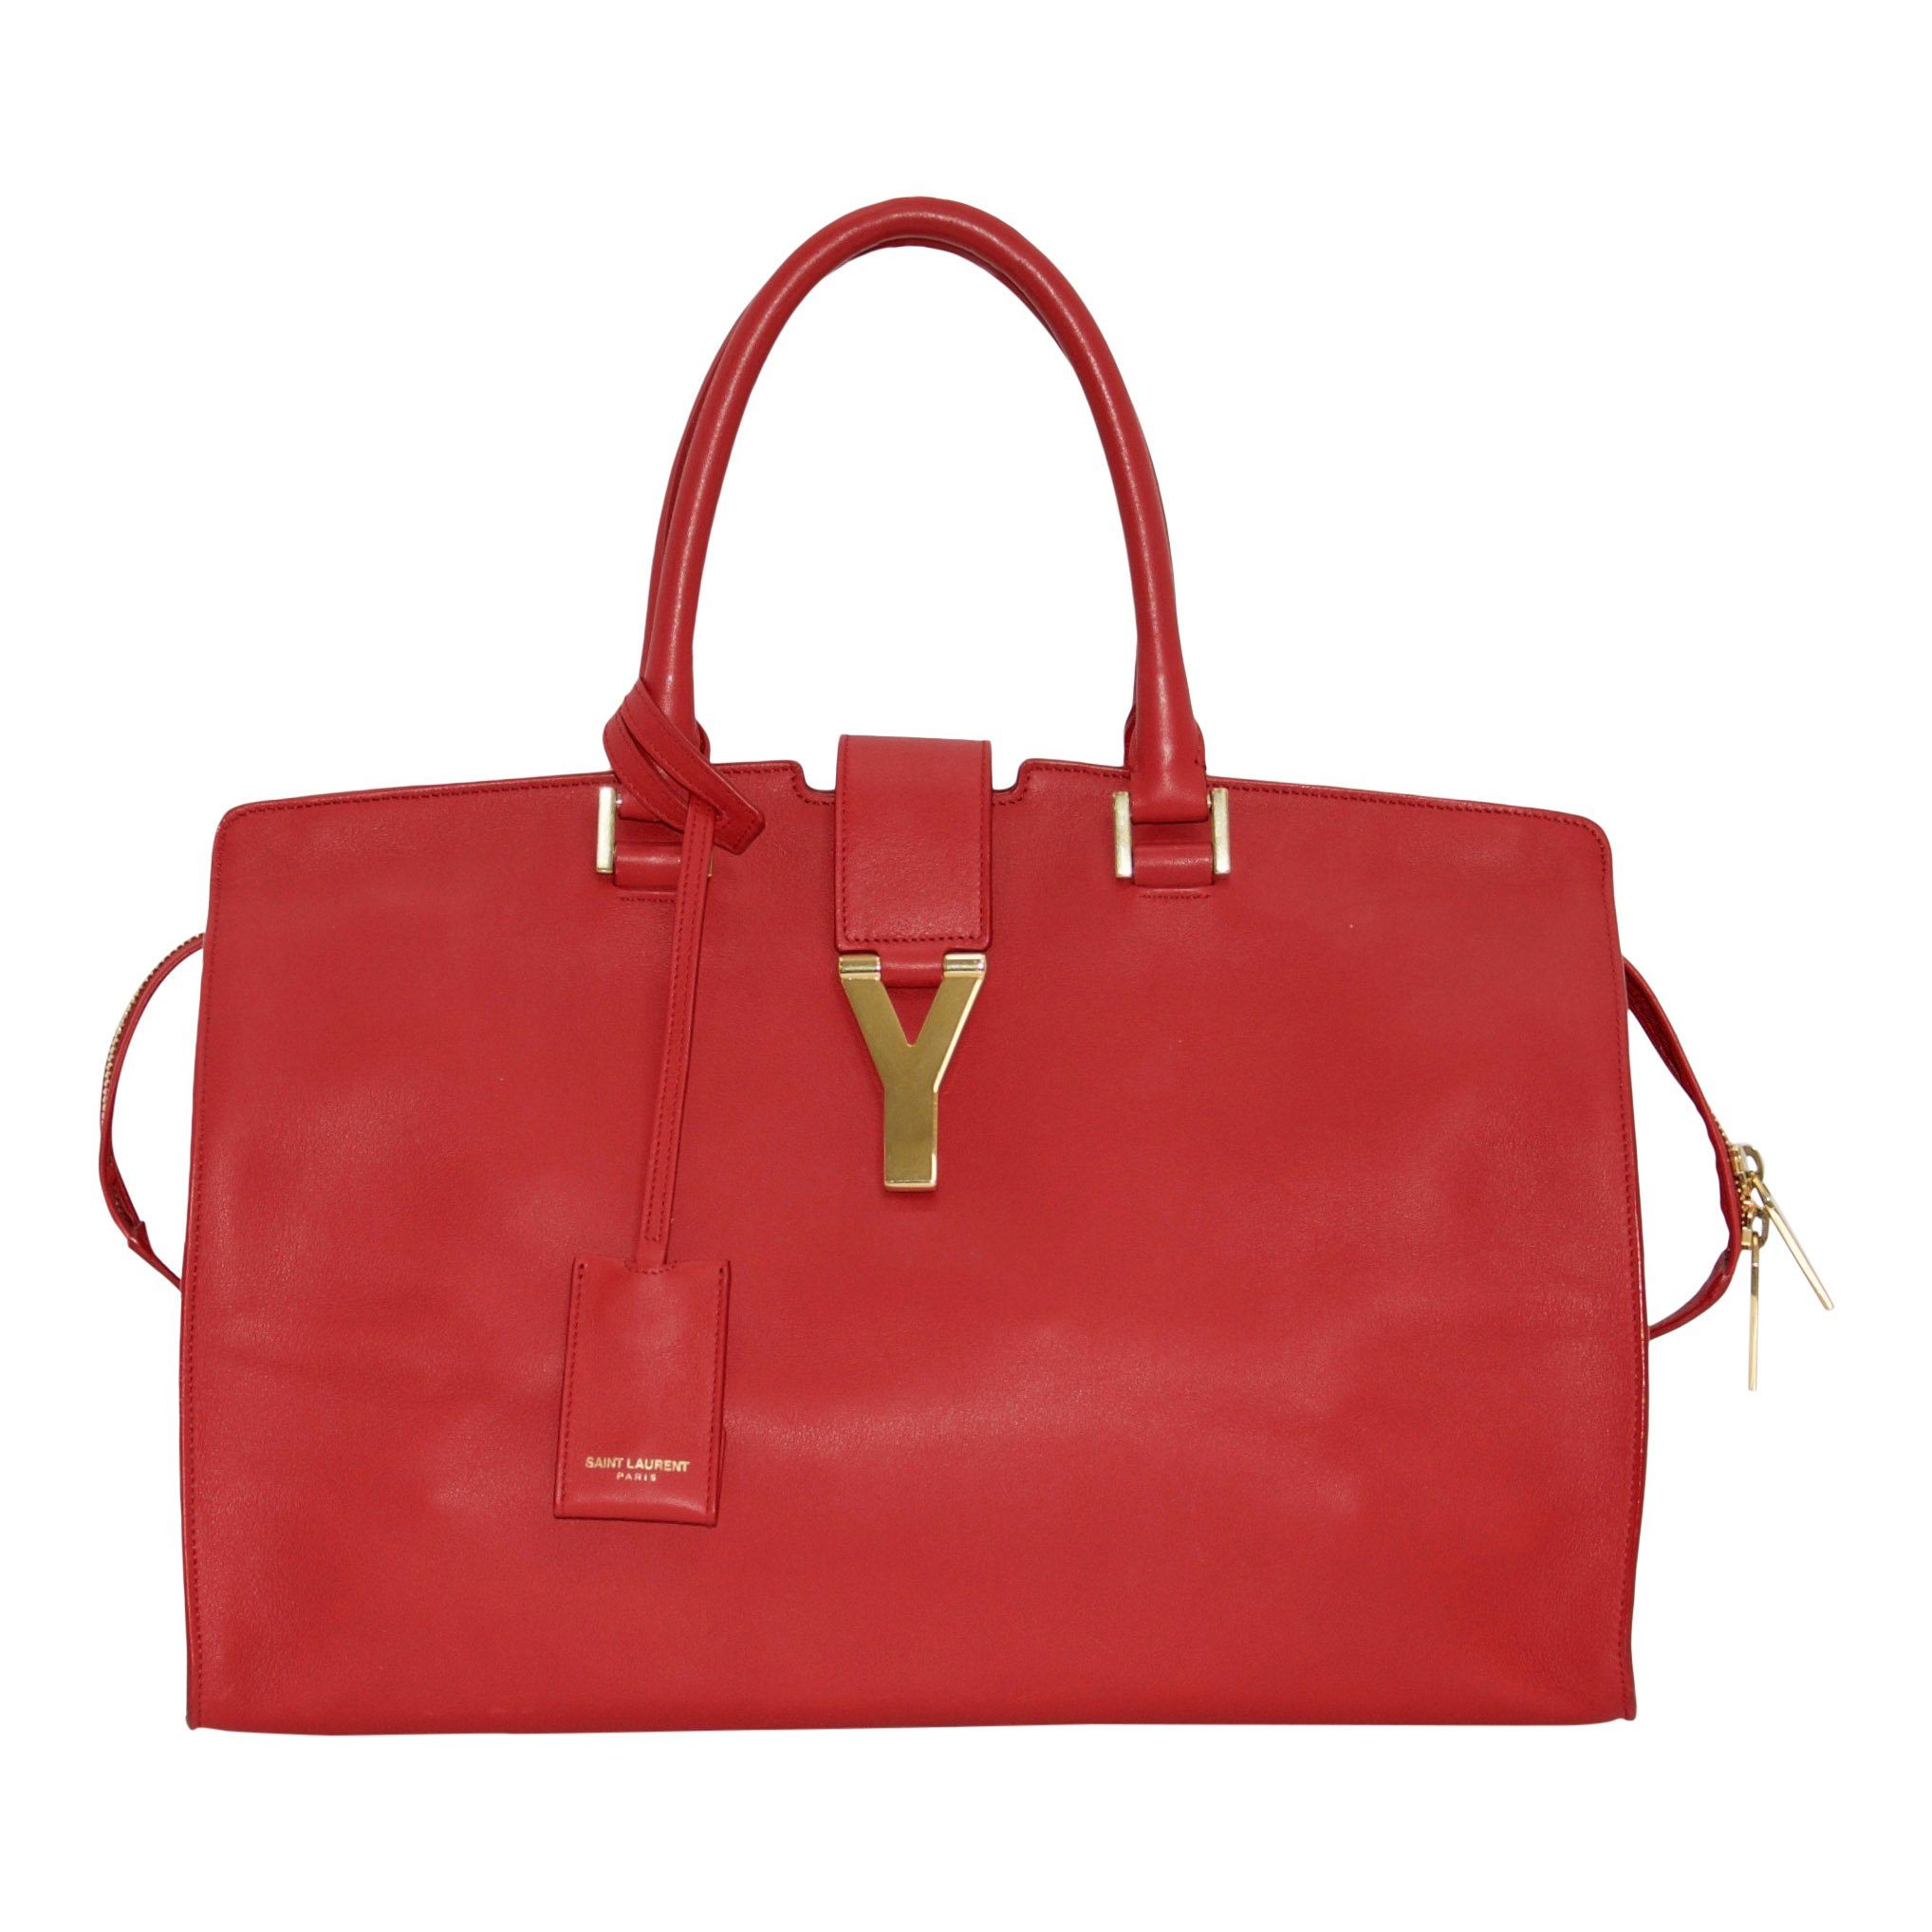 e06f387a87e5 Yves Saint Laurent Large Cabas Chyc Bag - Oliver Jewellery